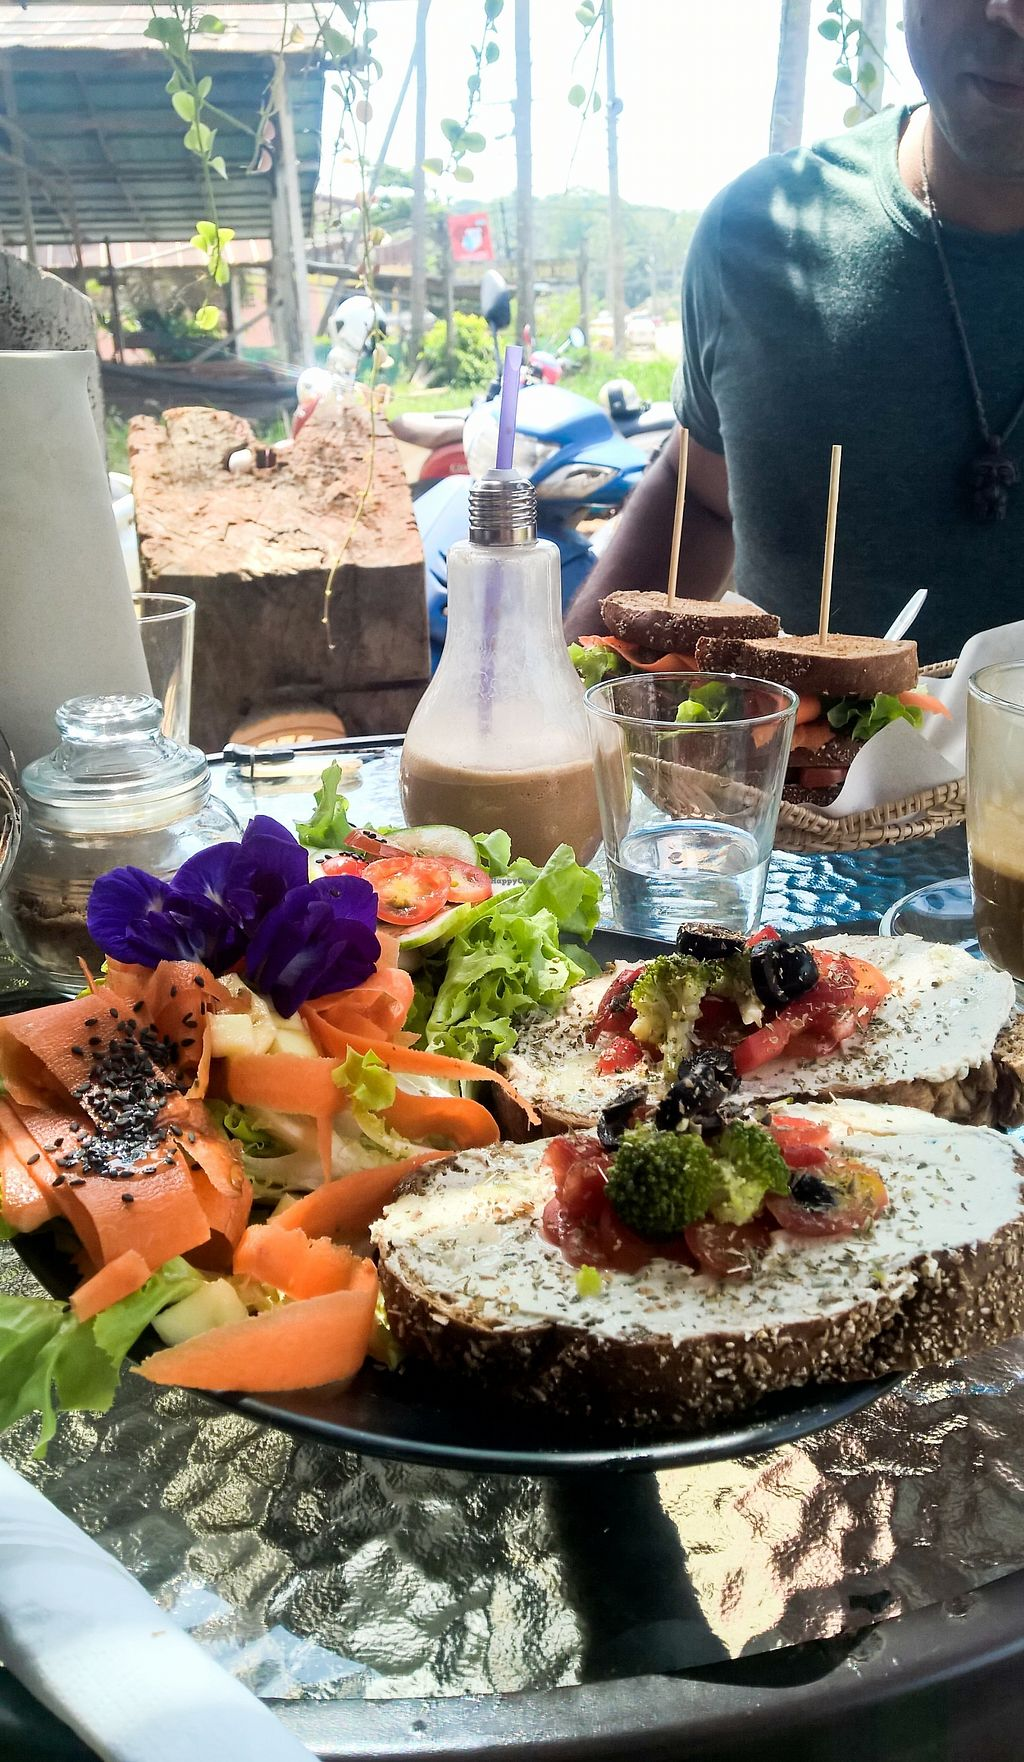 """Photo of Kaya Caffe  by <a href=""""/members/profile/tofu-n-beer"""">tofu-n-beer</a> <br/>Vegan bruschetta <br/> December 16, 2017  - <a href='/contact/abuse/image/98208/336103'>Report</a>"""